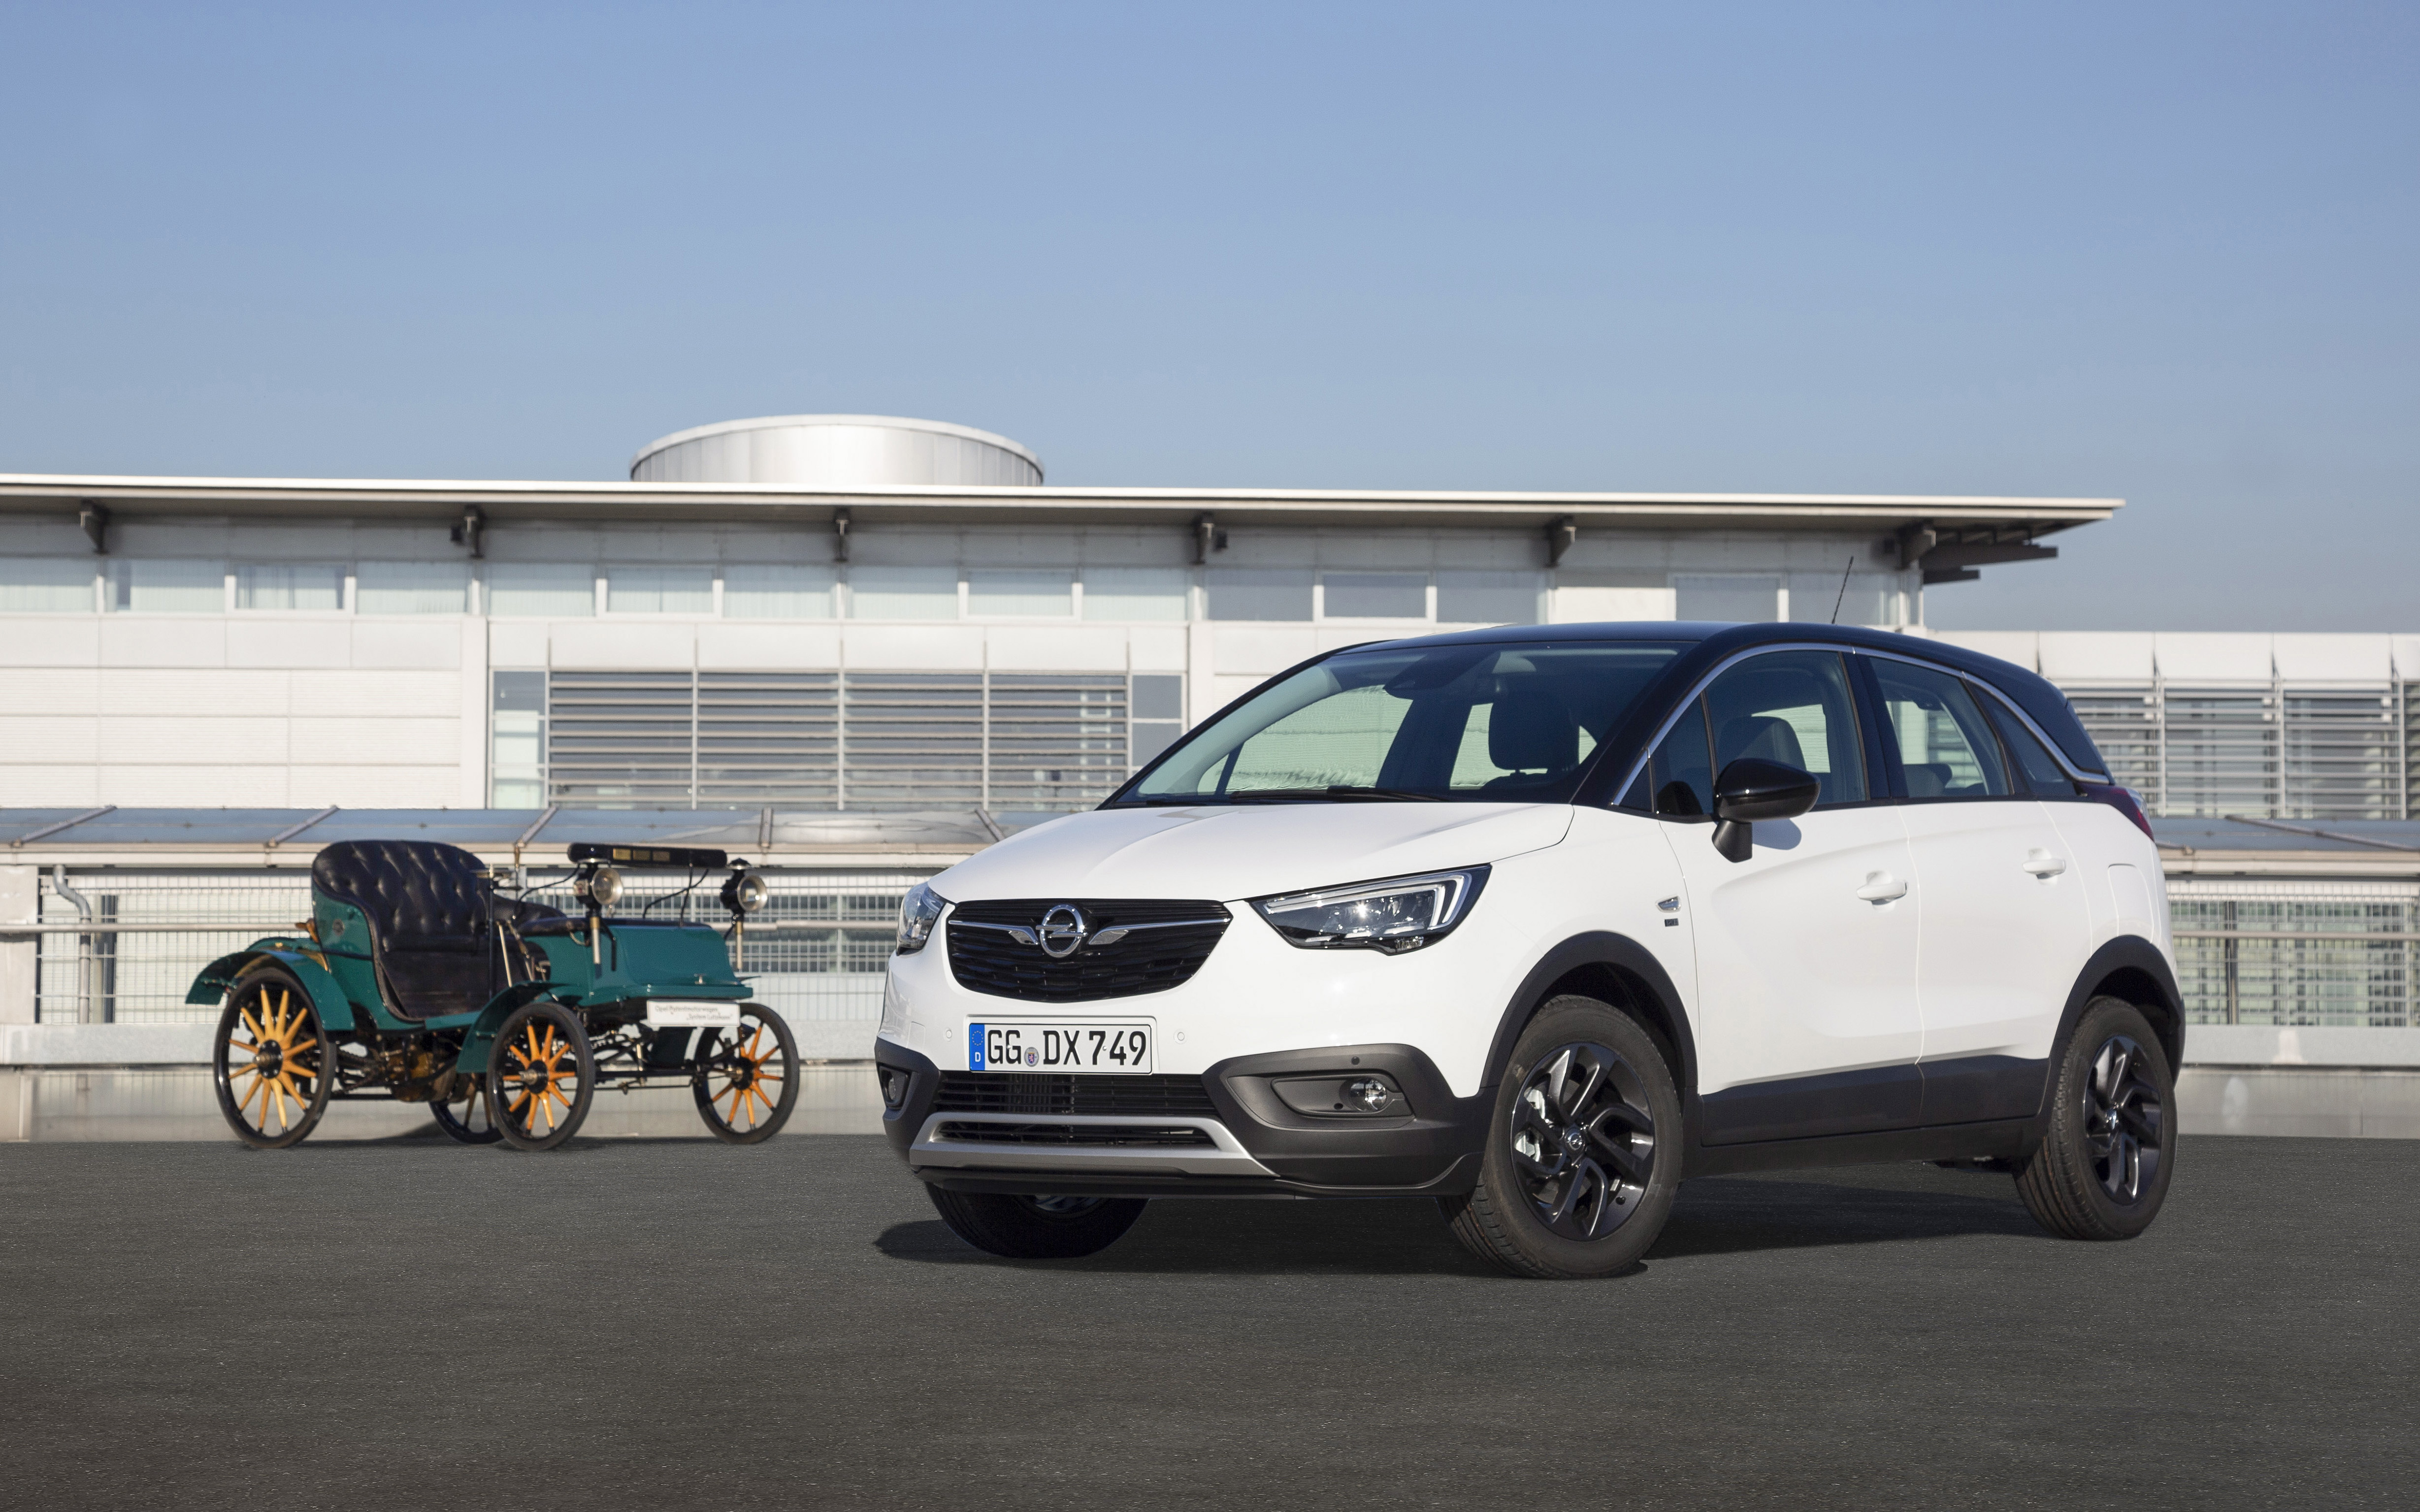 Safety For All Opel Crossland X 120 Years Continues The Tradition Opel Automobile Gmbh Pressemitteilung Lifepr